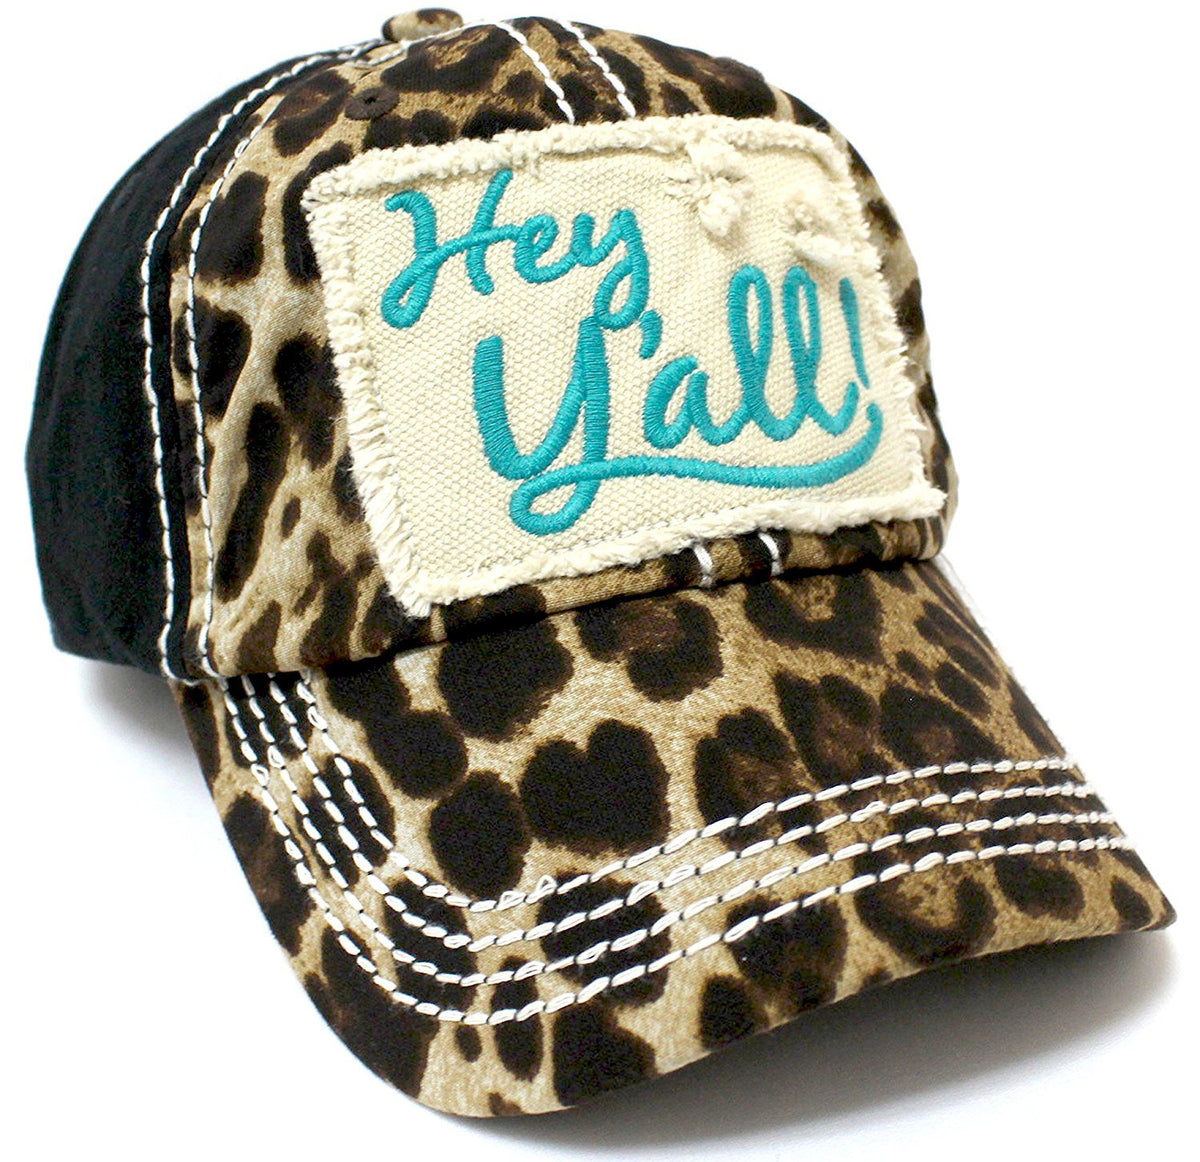 "LEOPARD & TURQUOISE ""Hey Y'all!"" Patch Embroidery Cap/ Vintage Hat - Caps 'N Vintage"